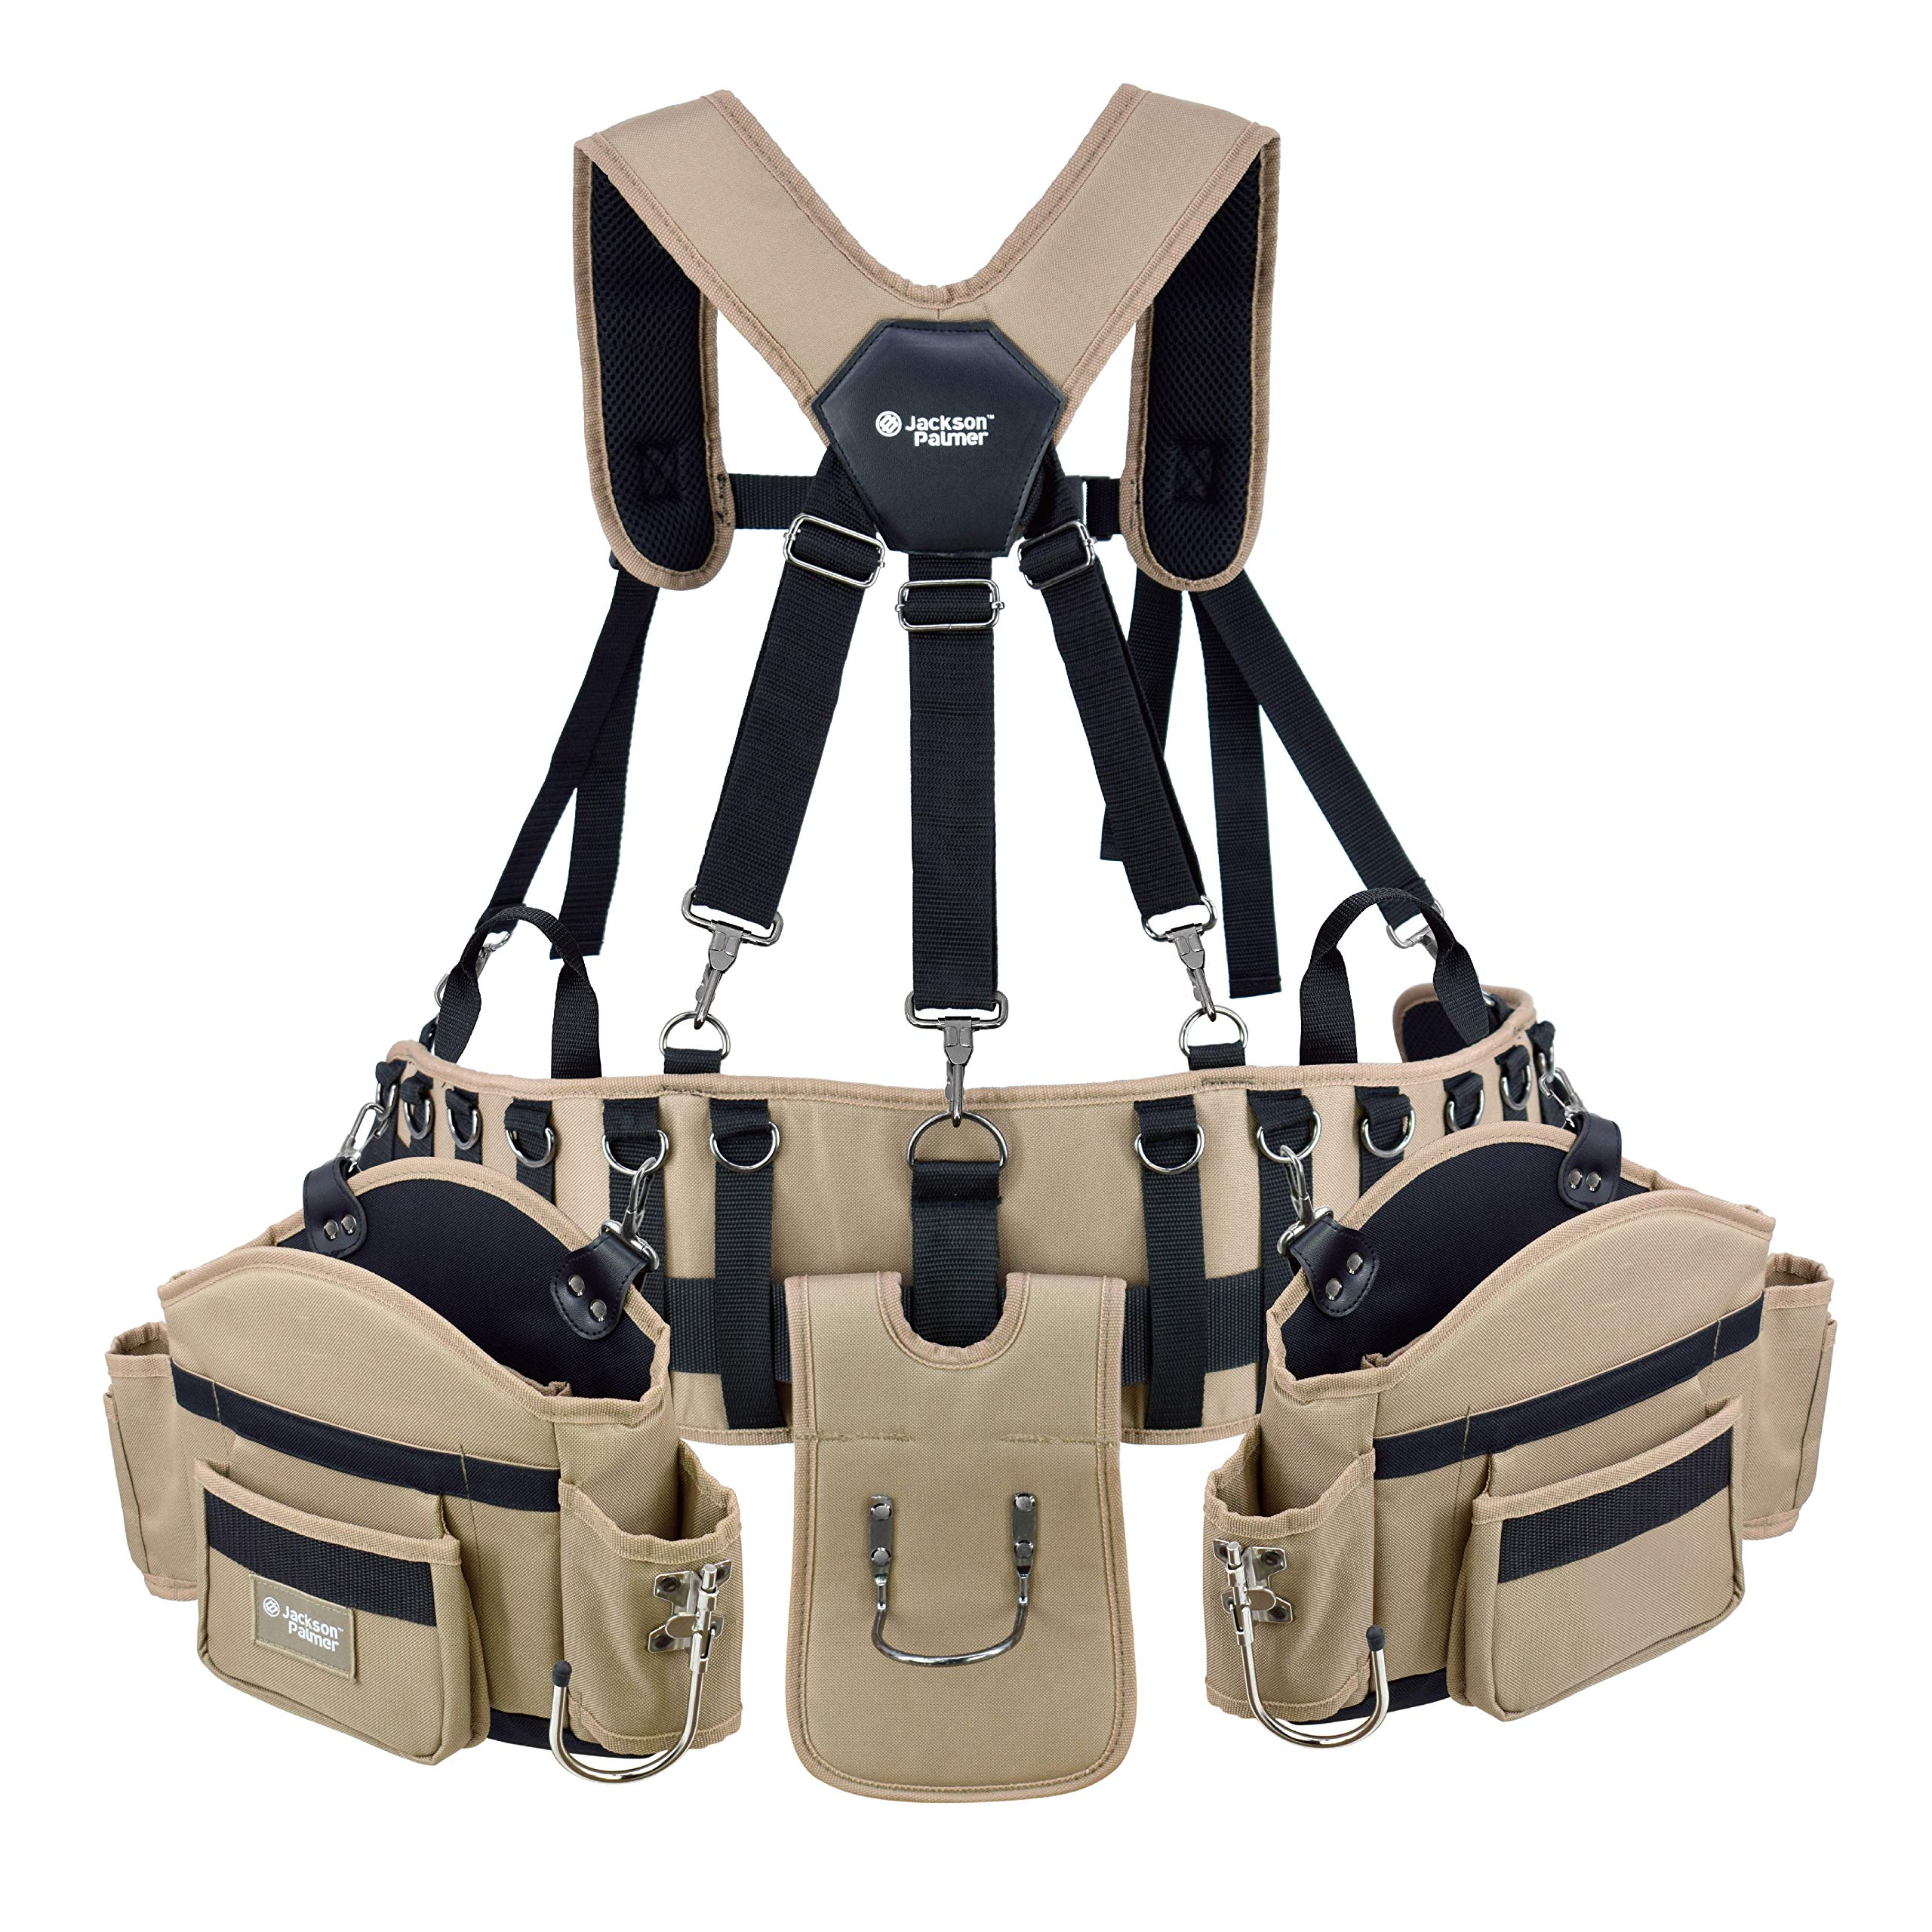 Jackson Palmer Professional Comfort-Rig Tool Belt With Suspenders (Adjustable System with 2-Power Tool Hooks) by Jackson Palmer